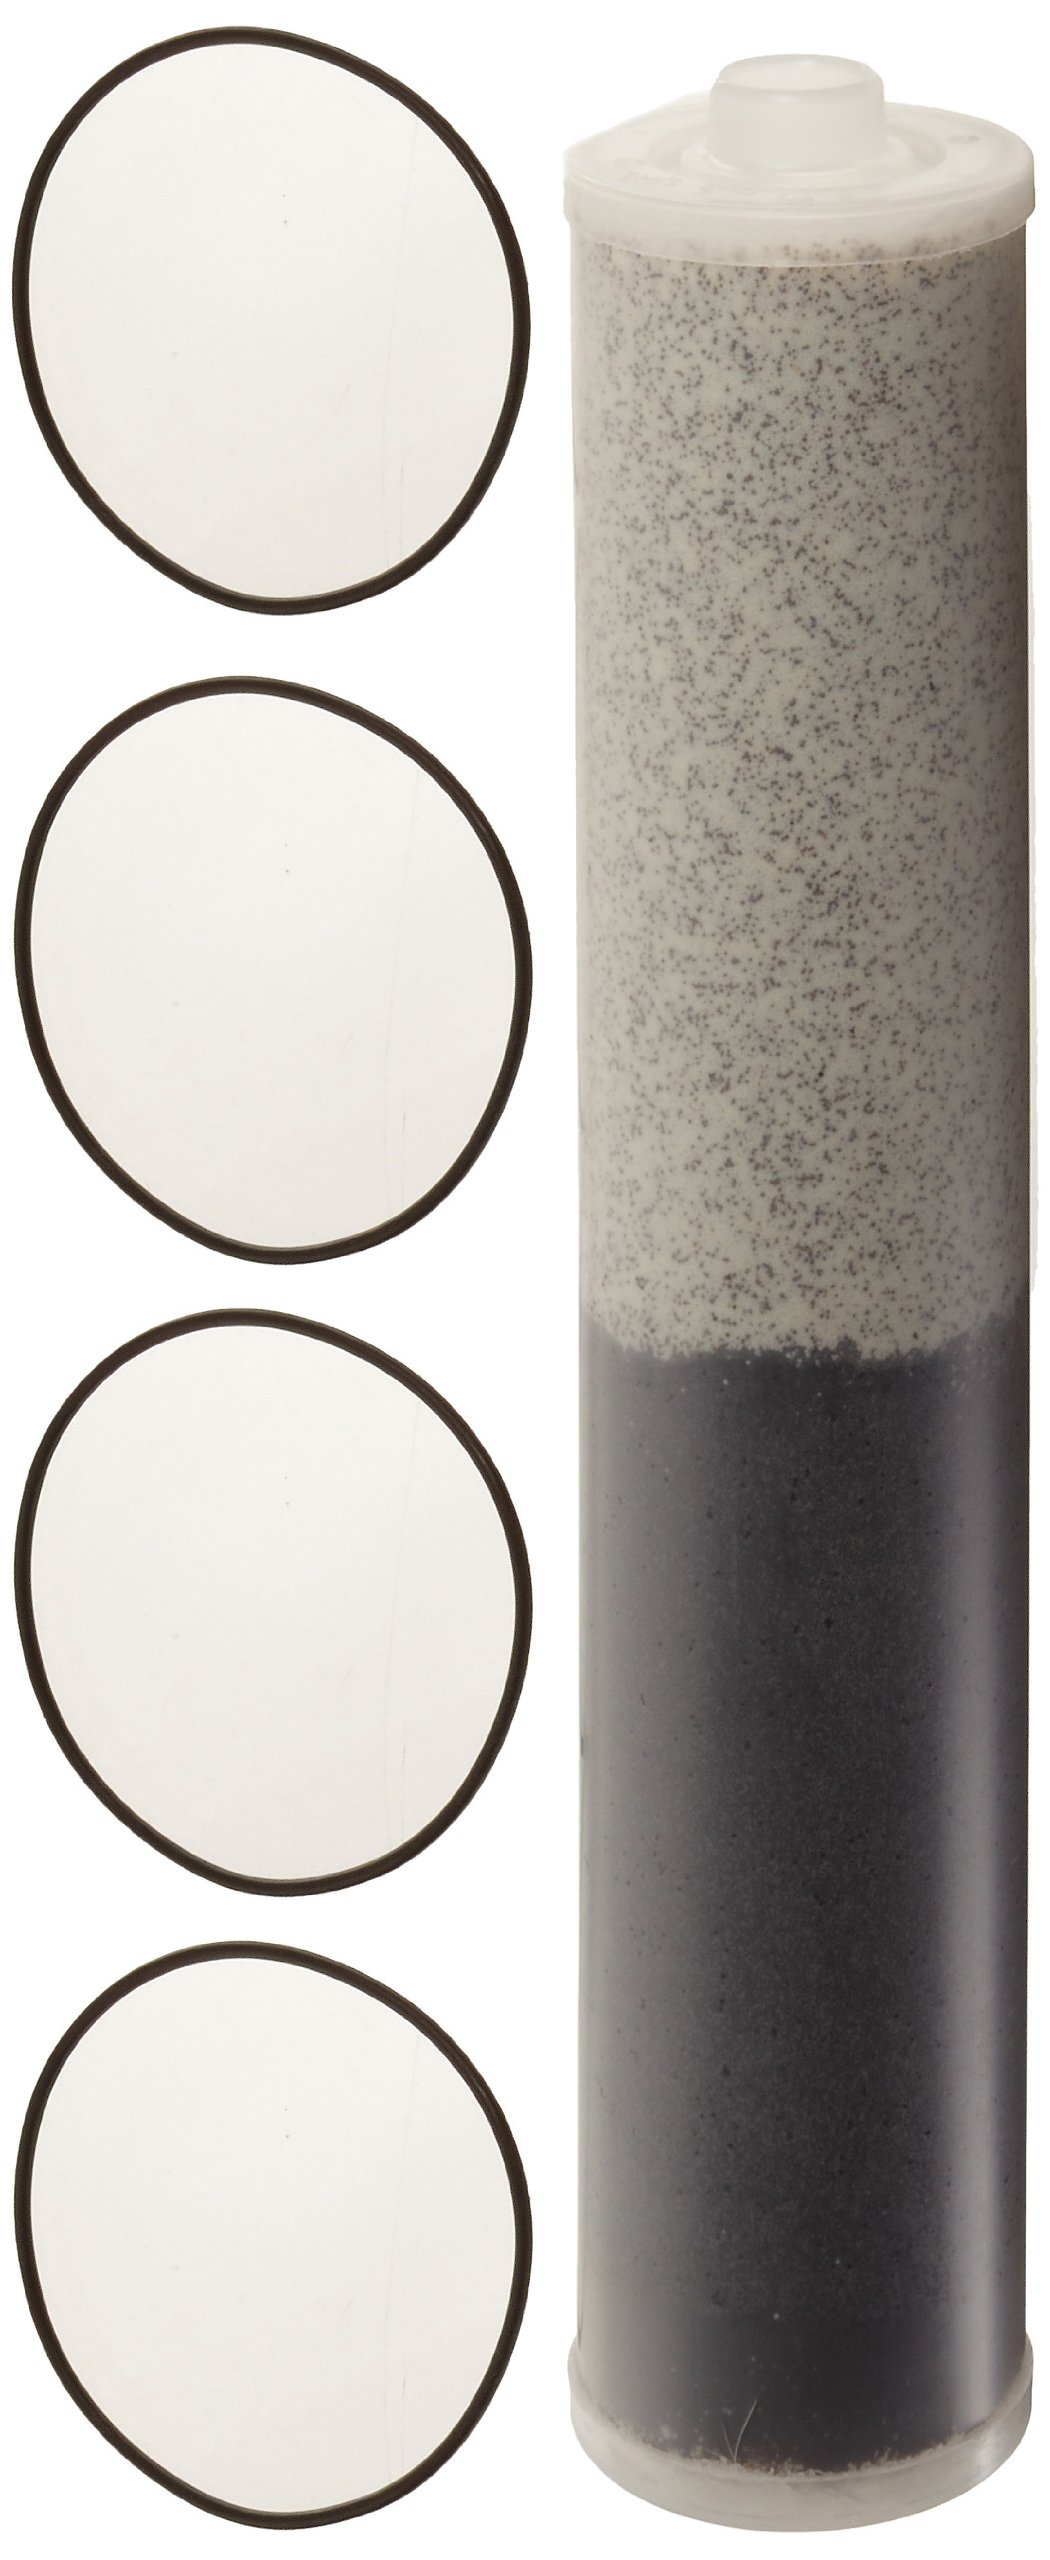 Thermo Scientific Barnstead D5023 4-Holder Cartridge Kit, For Tap Feed/Organic Free E-Pure Water Purification System